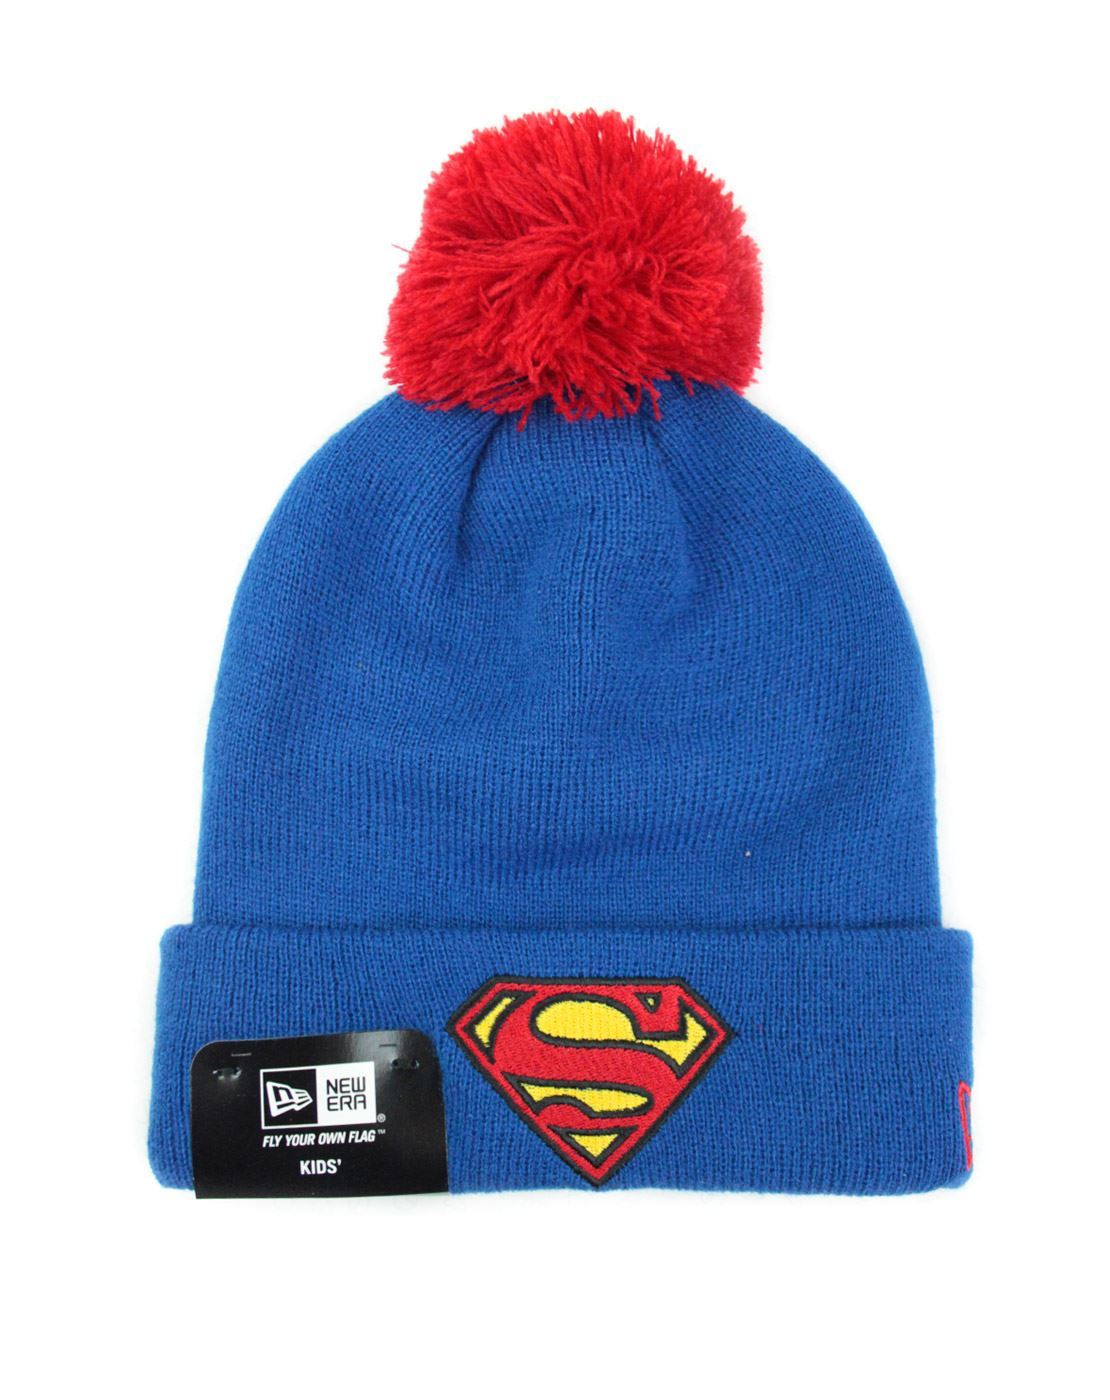 8d494534fcc New Era Superman Bobble Cuff Kids Knit Hat – Vanilla Underground